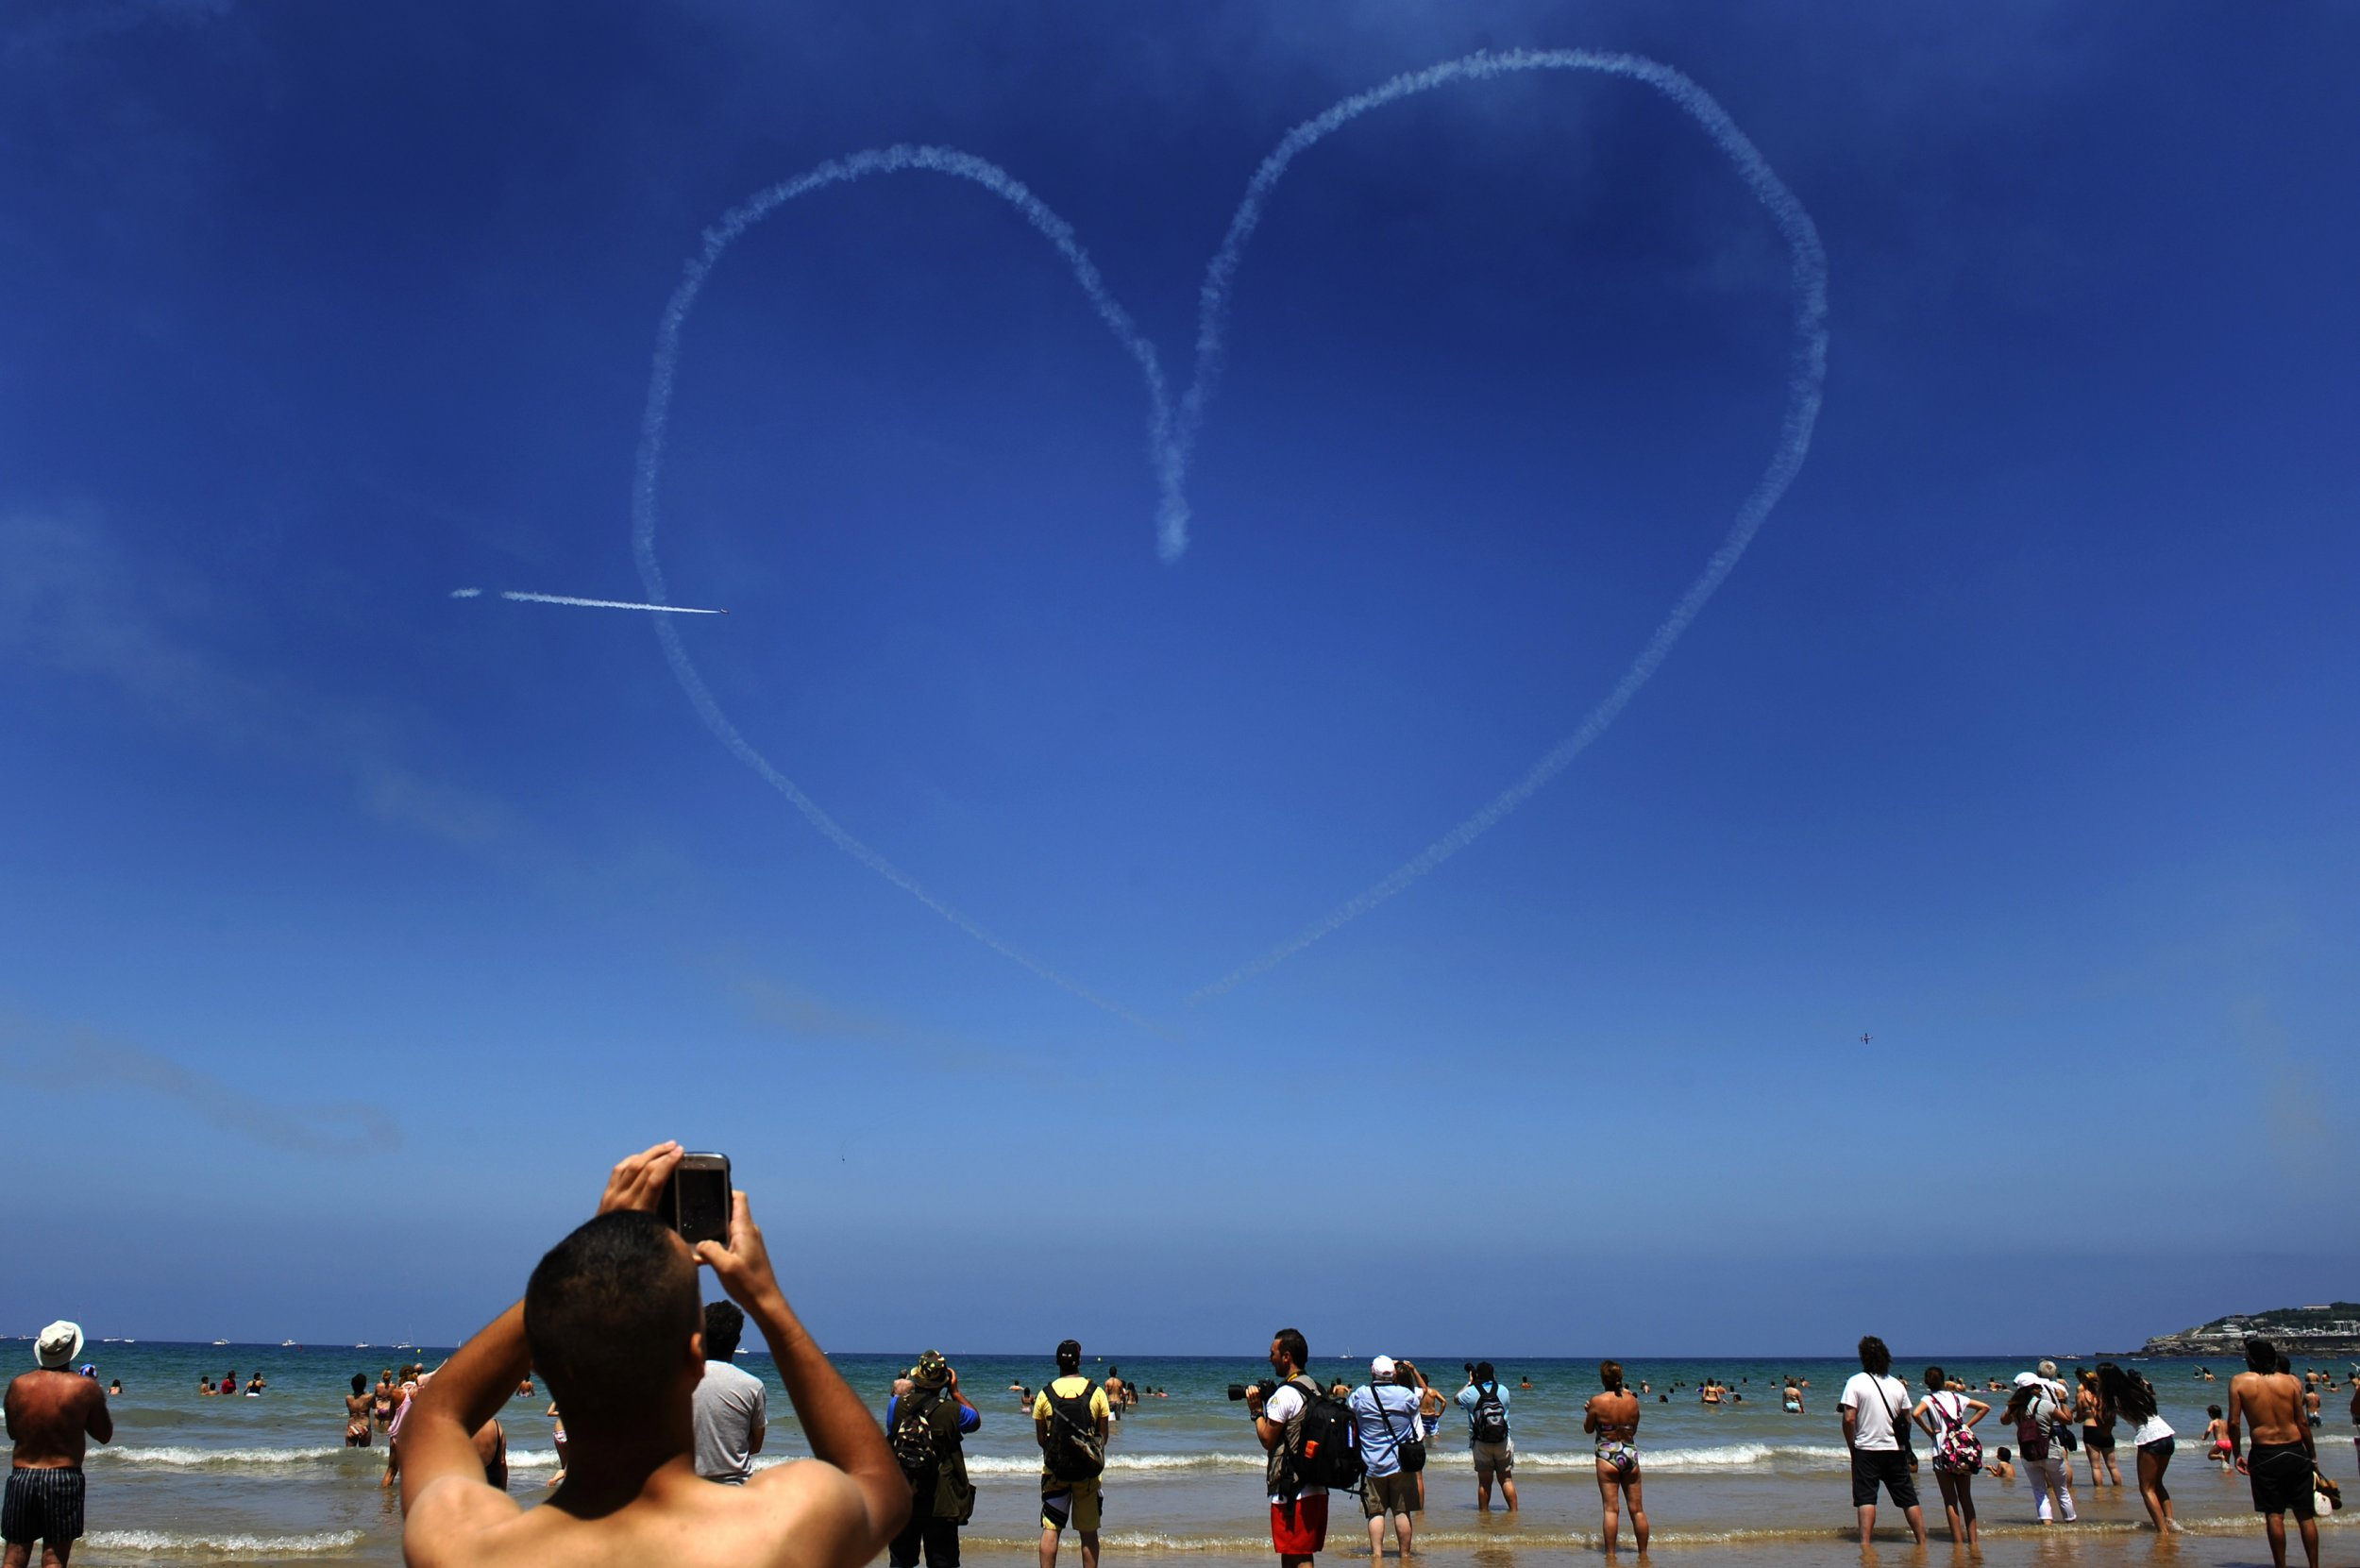 Beach goers watch a Spanish Air Force jet fly over a beach in Northern Spain